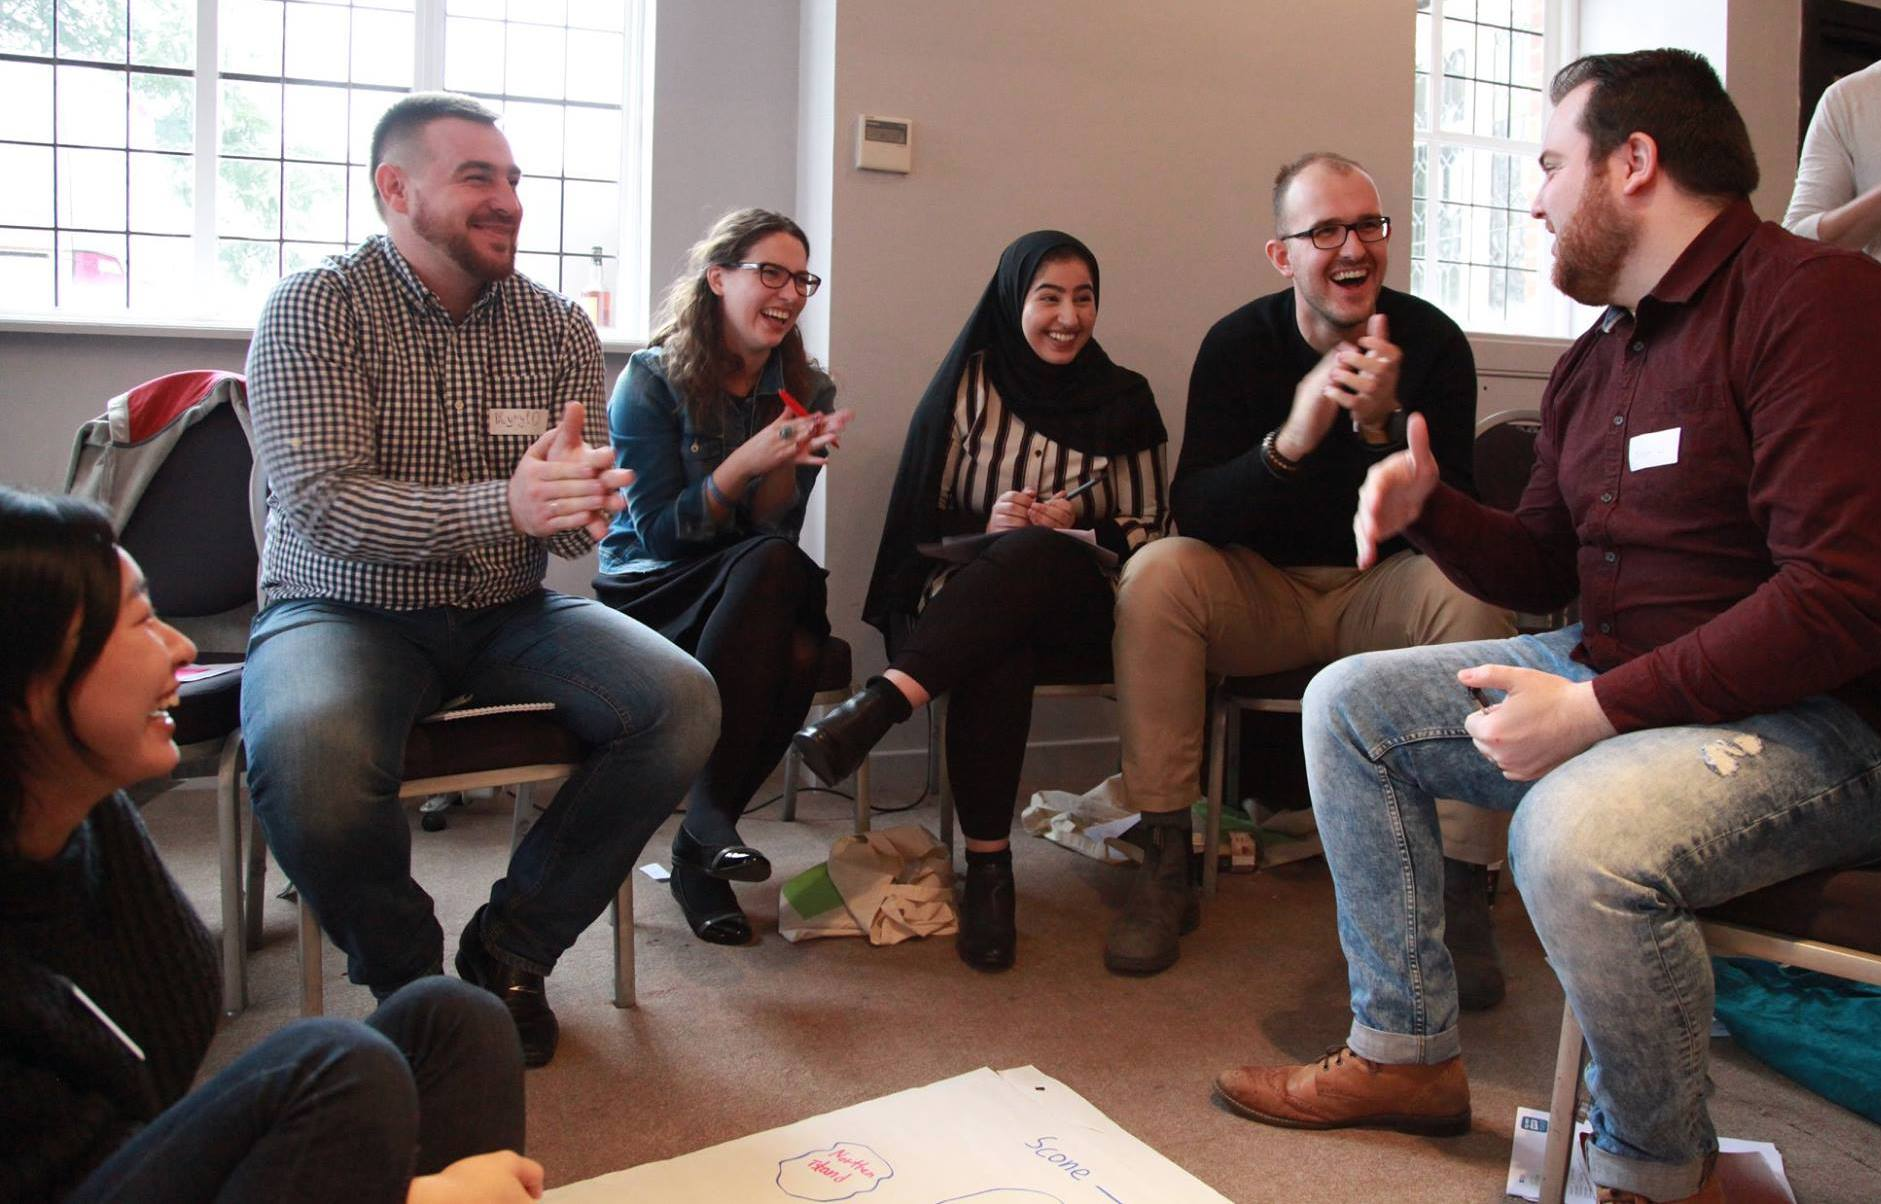 Dozens of social entrepreneurs and community activists from nine different countries joined a week-long British Council International Study Visit in London in December, under its Active Citizens programme